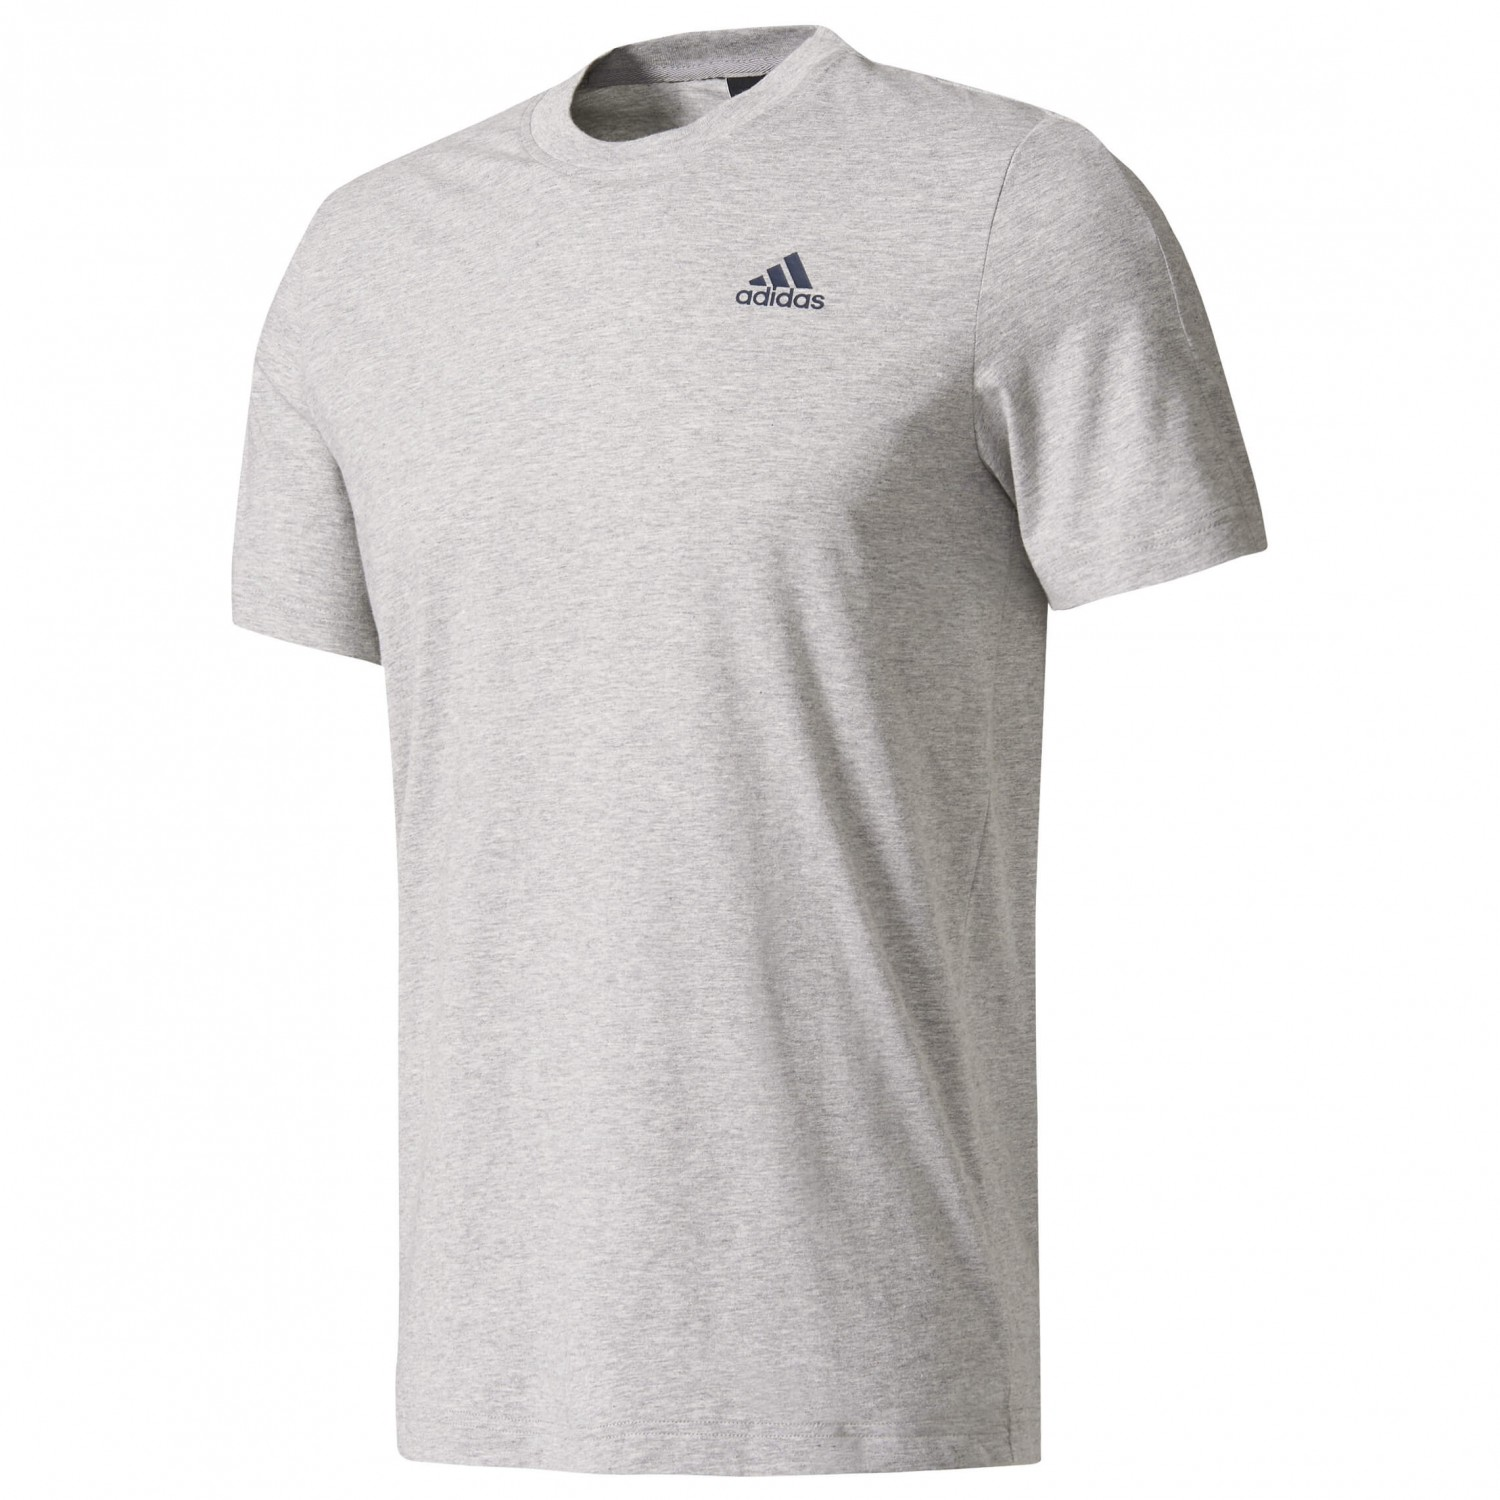 adidas t shirt essentials